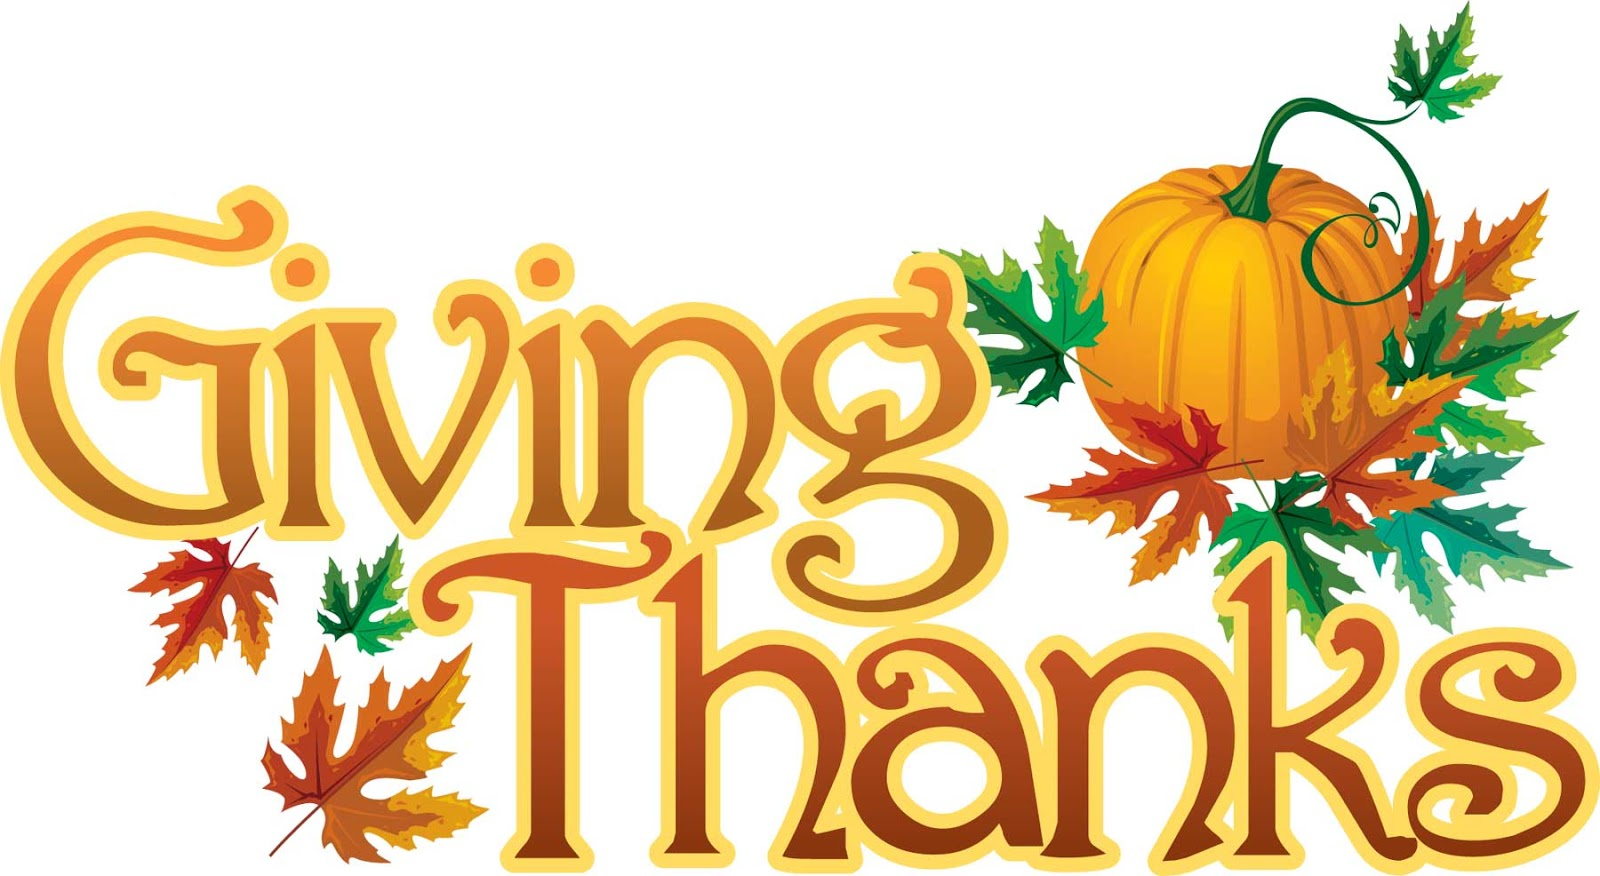 Give Thanks Thankful Quotes Images Pictures Wishes Greetings Cards